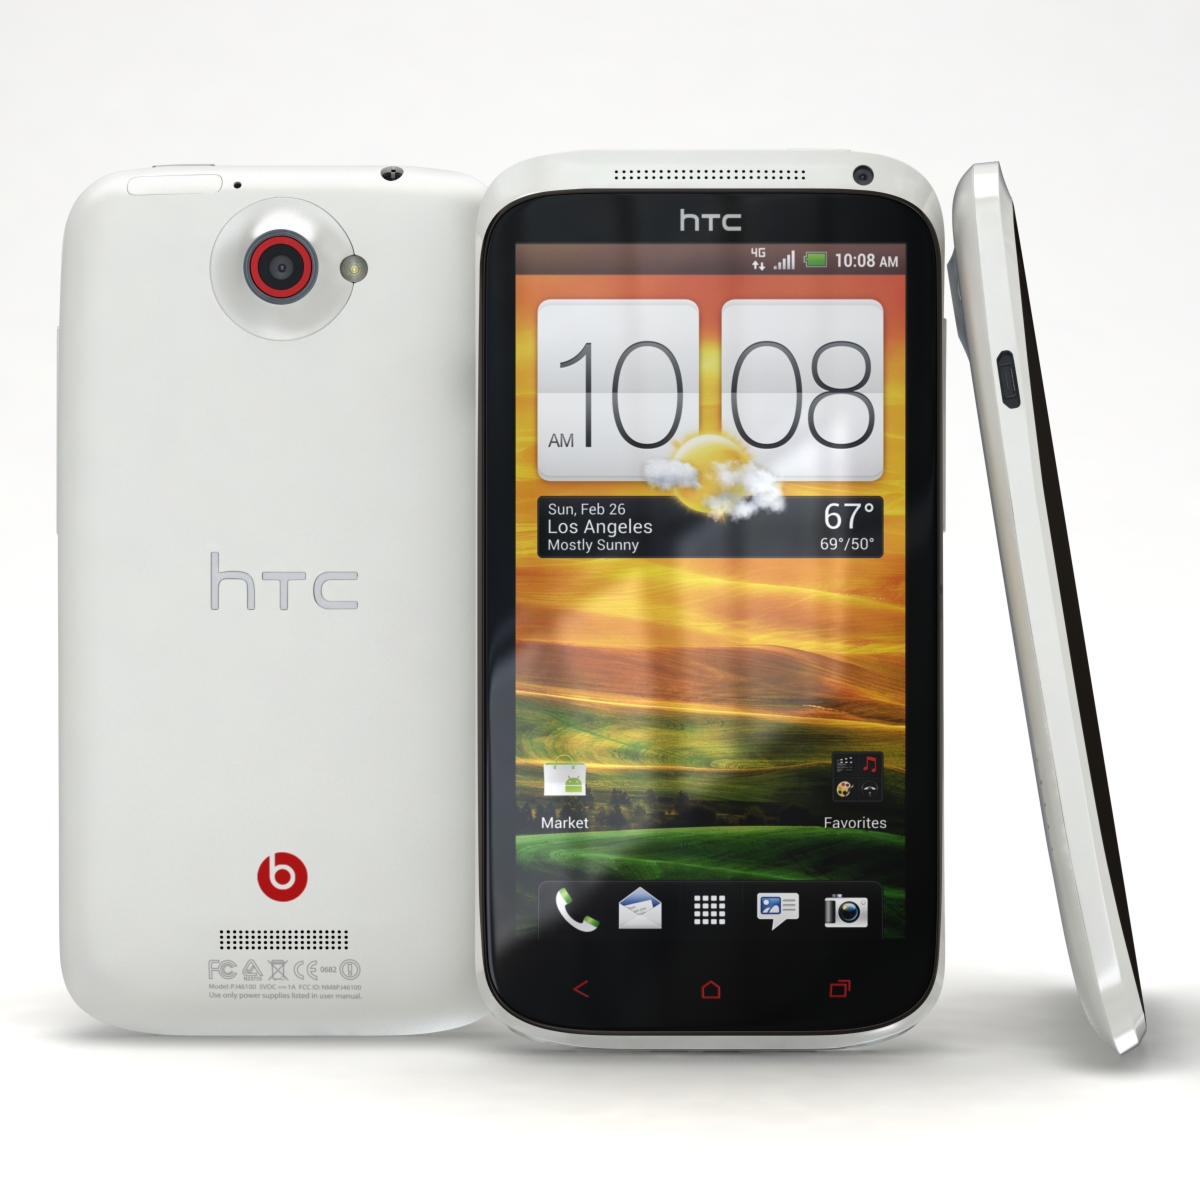 htc one x+ black and white 3d model 3ds max fbx c4d lwo obj 151458